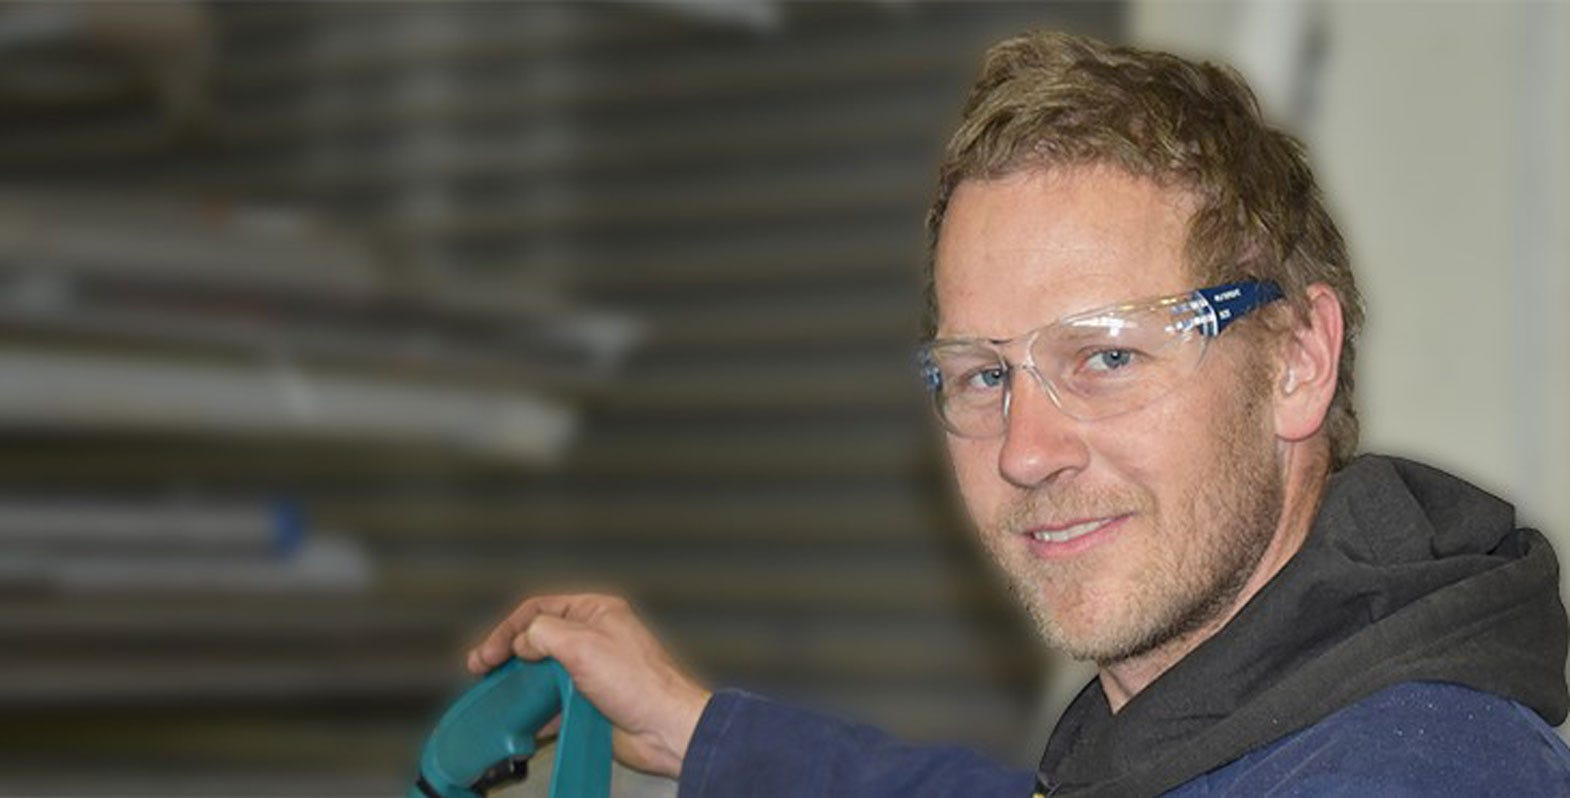 The 7 most commonly asked questions about safety glasses